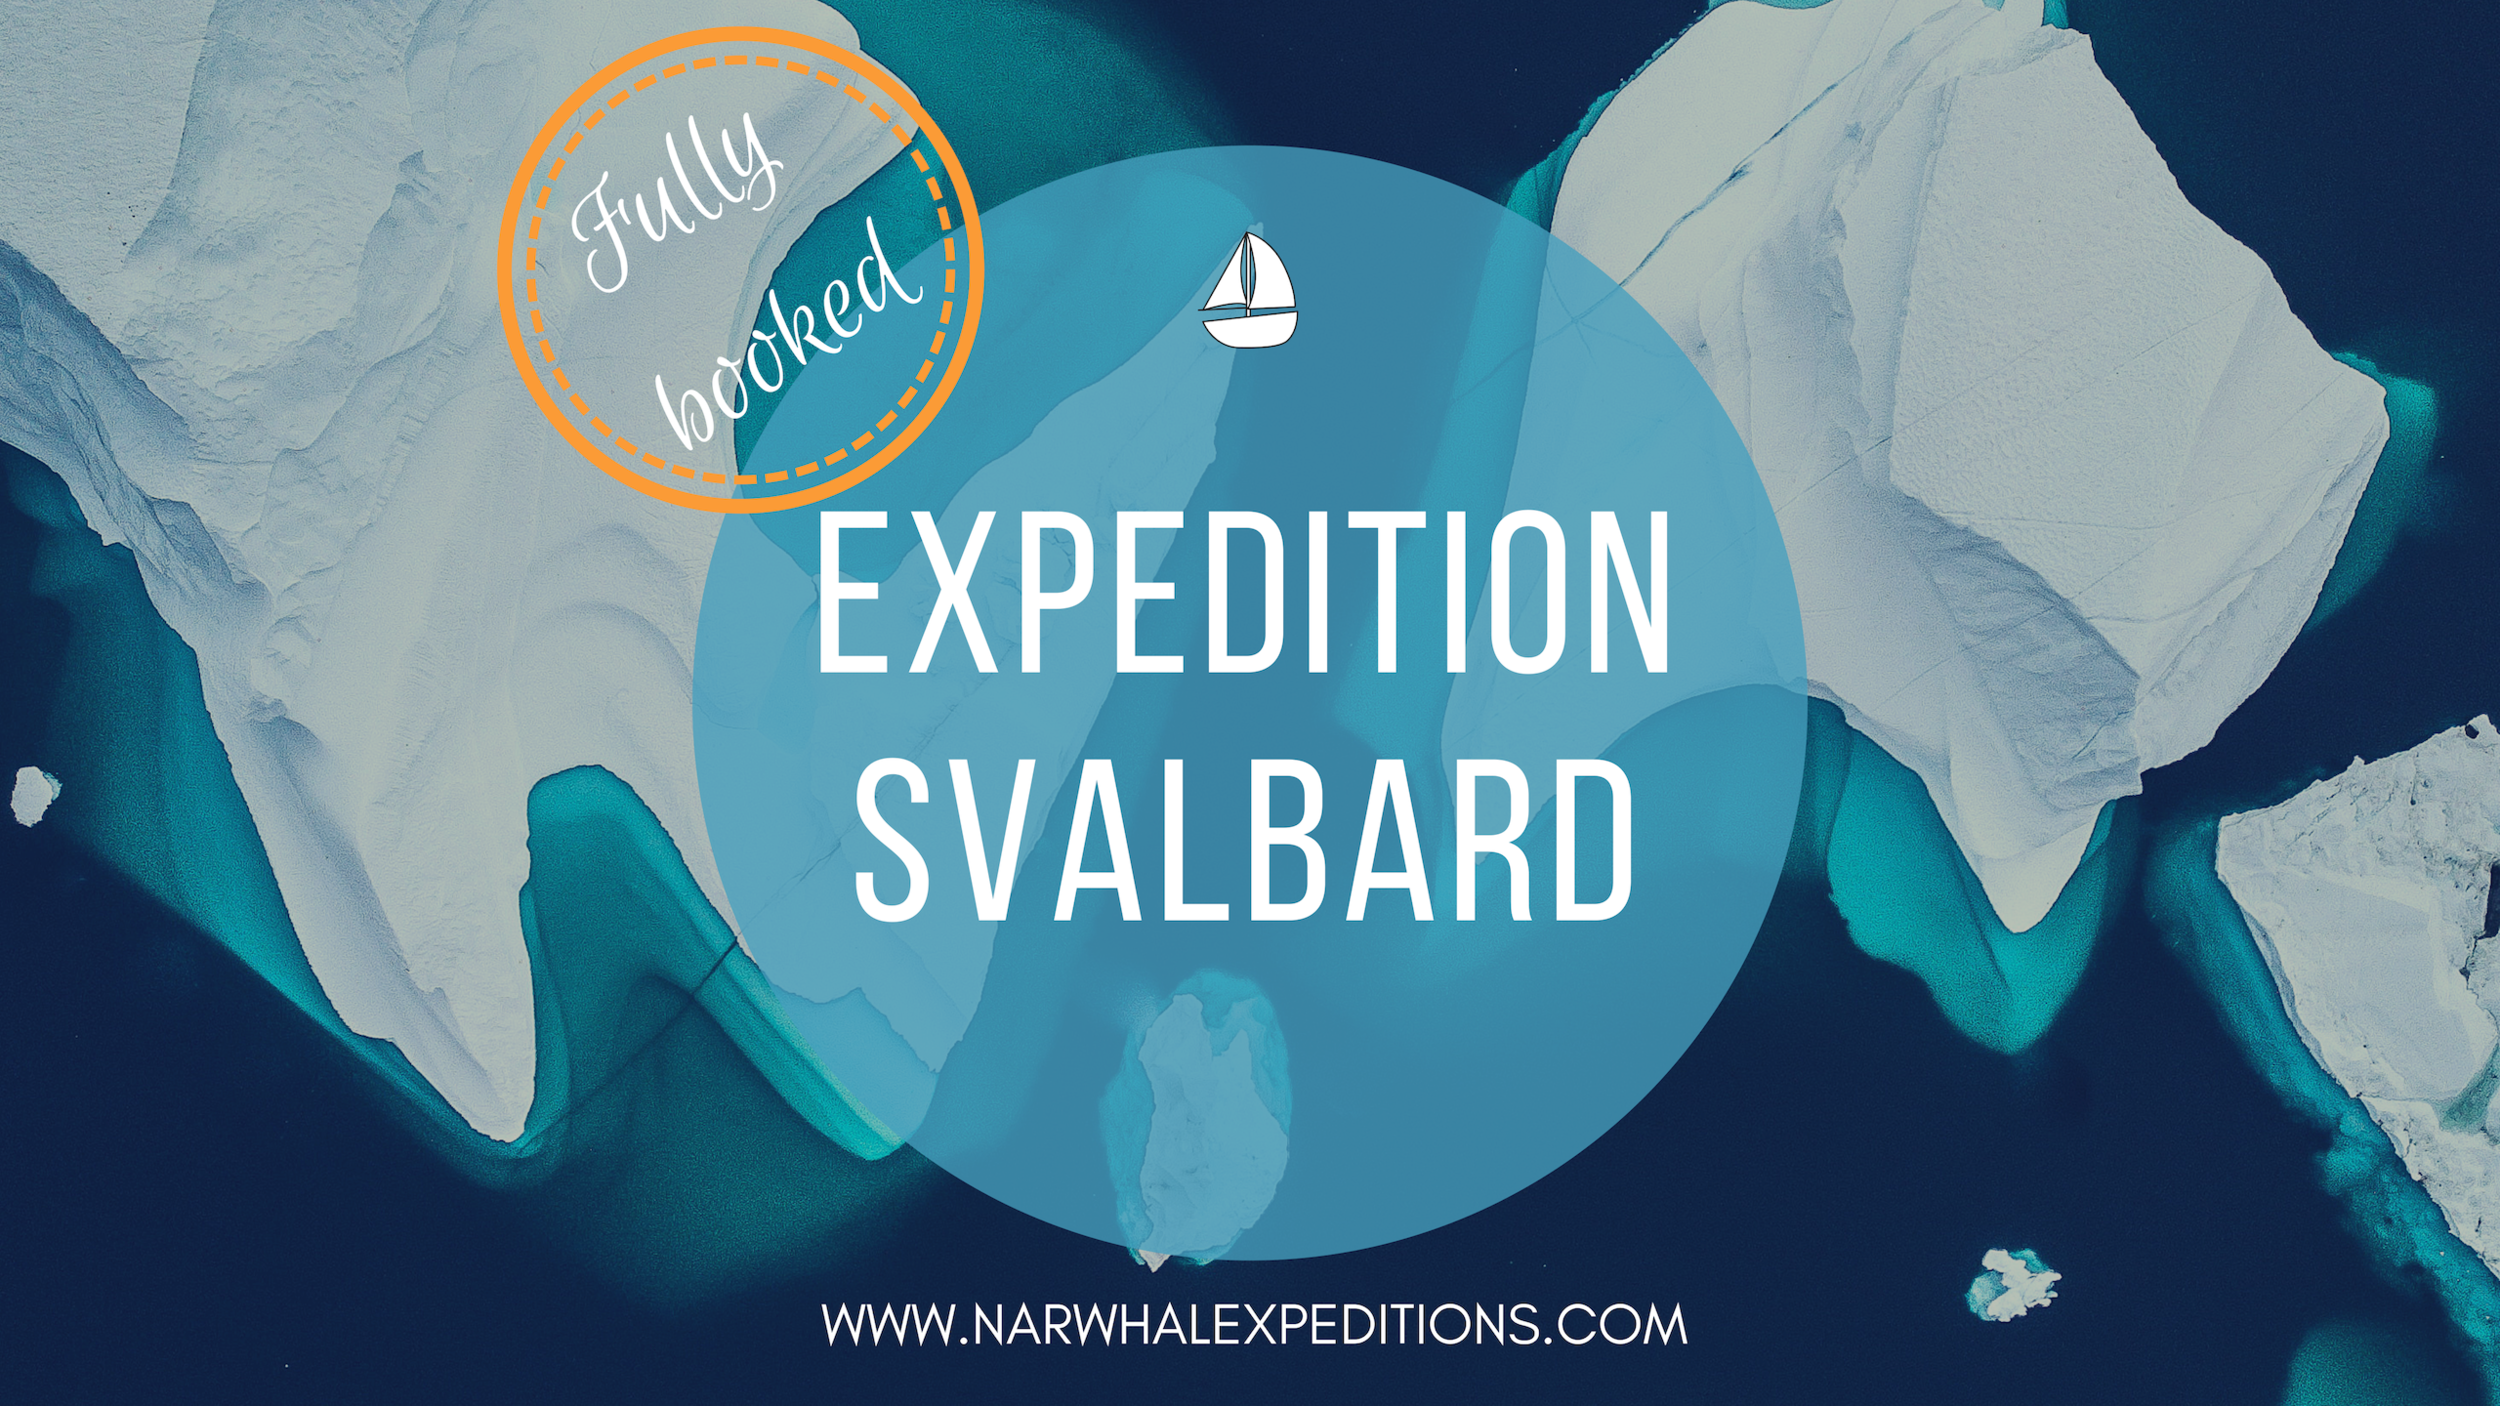 Sailing expedition to arctic Svalbard